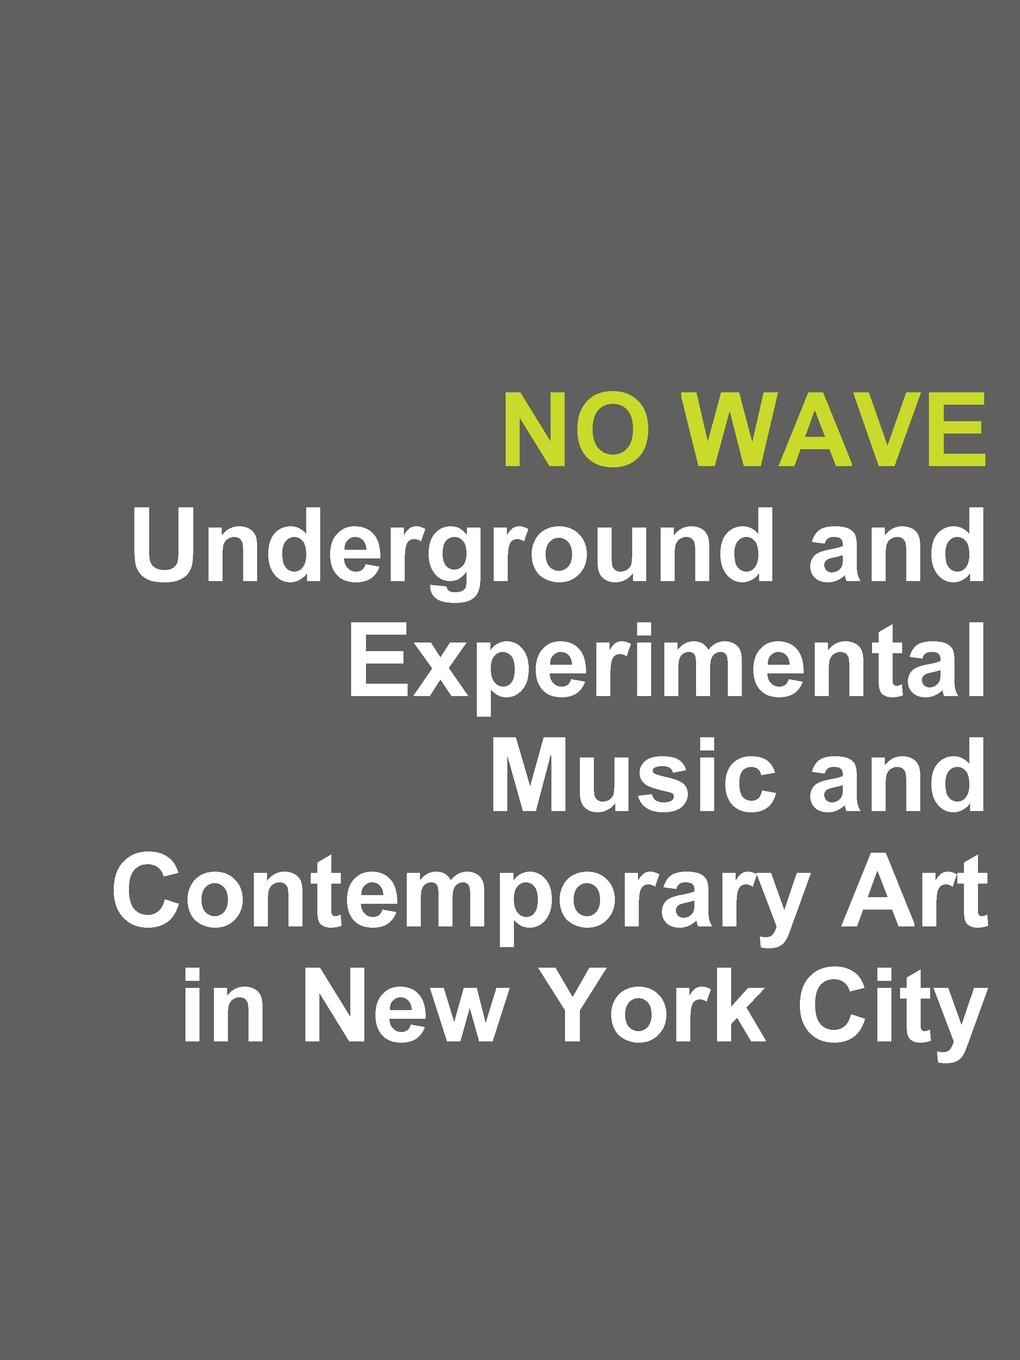 Rogers No Wave. Underground and Experimental Music and Contemporary Art in New York City irene fowlkes gender and the city politics of space in contemporary new york pop culture